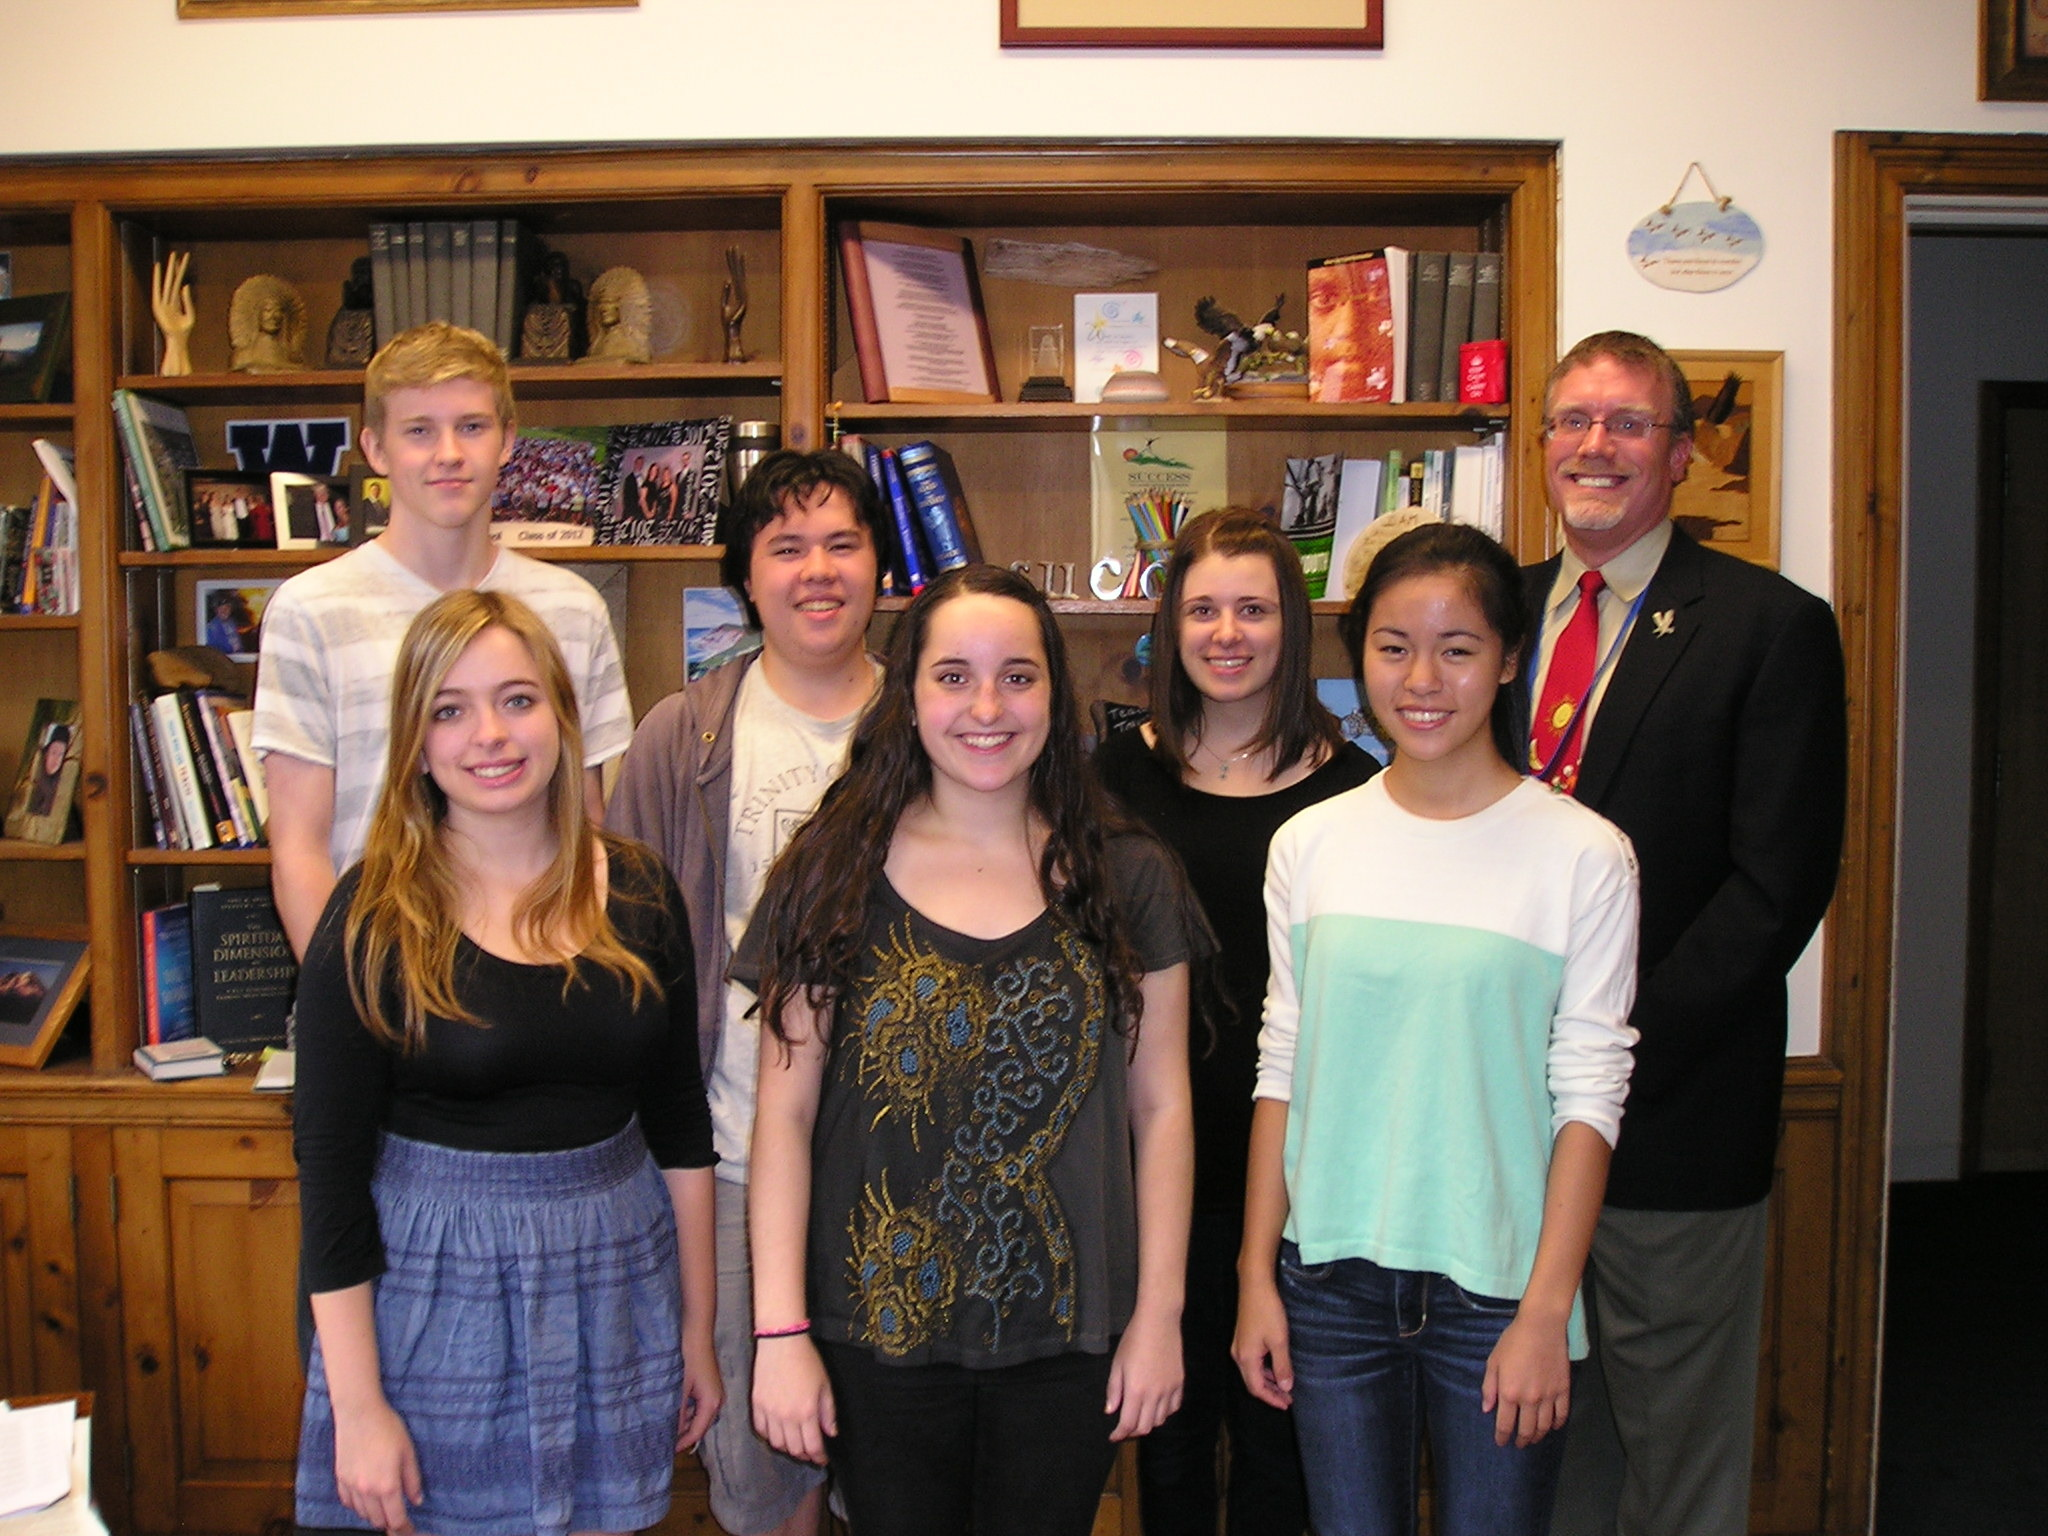 21645a972c011170f8bb_Natl_Merit_Semifinalists_1_.JPG